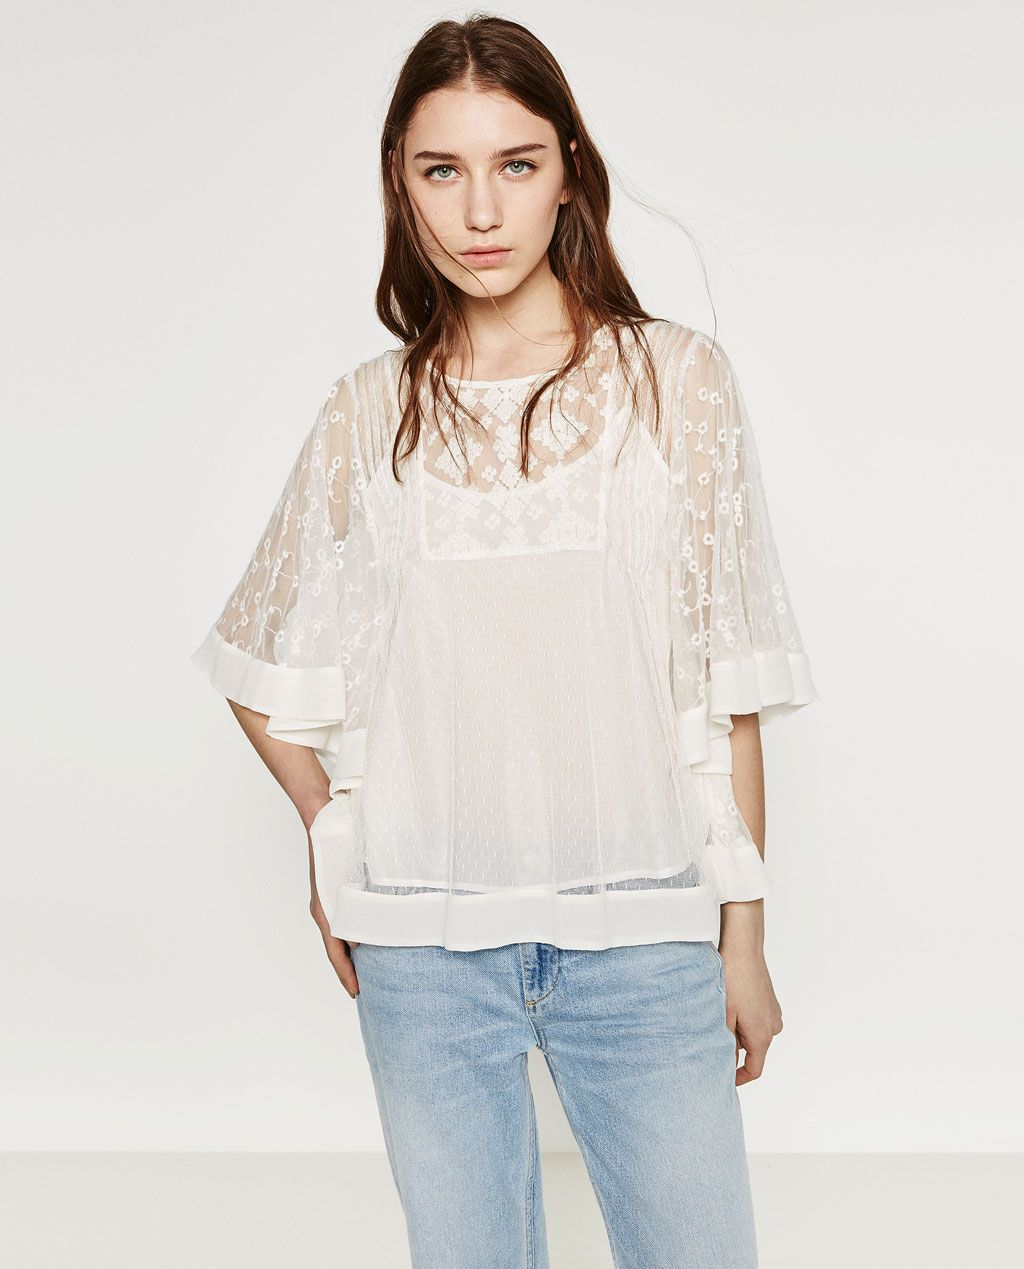 35947dd8 FRILLED SLEEVE TOP-Blouses-TOPS-WOMAN | ZARA United States Love how romantic  this blouse is!